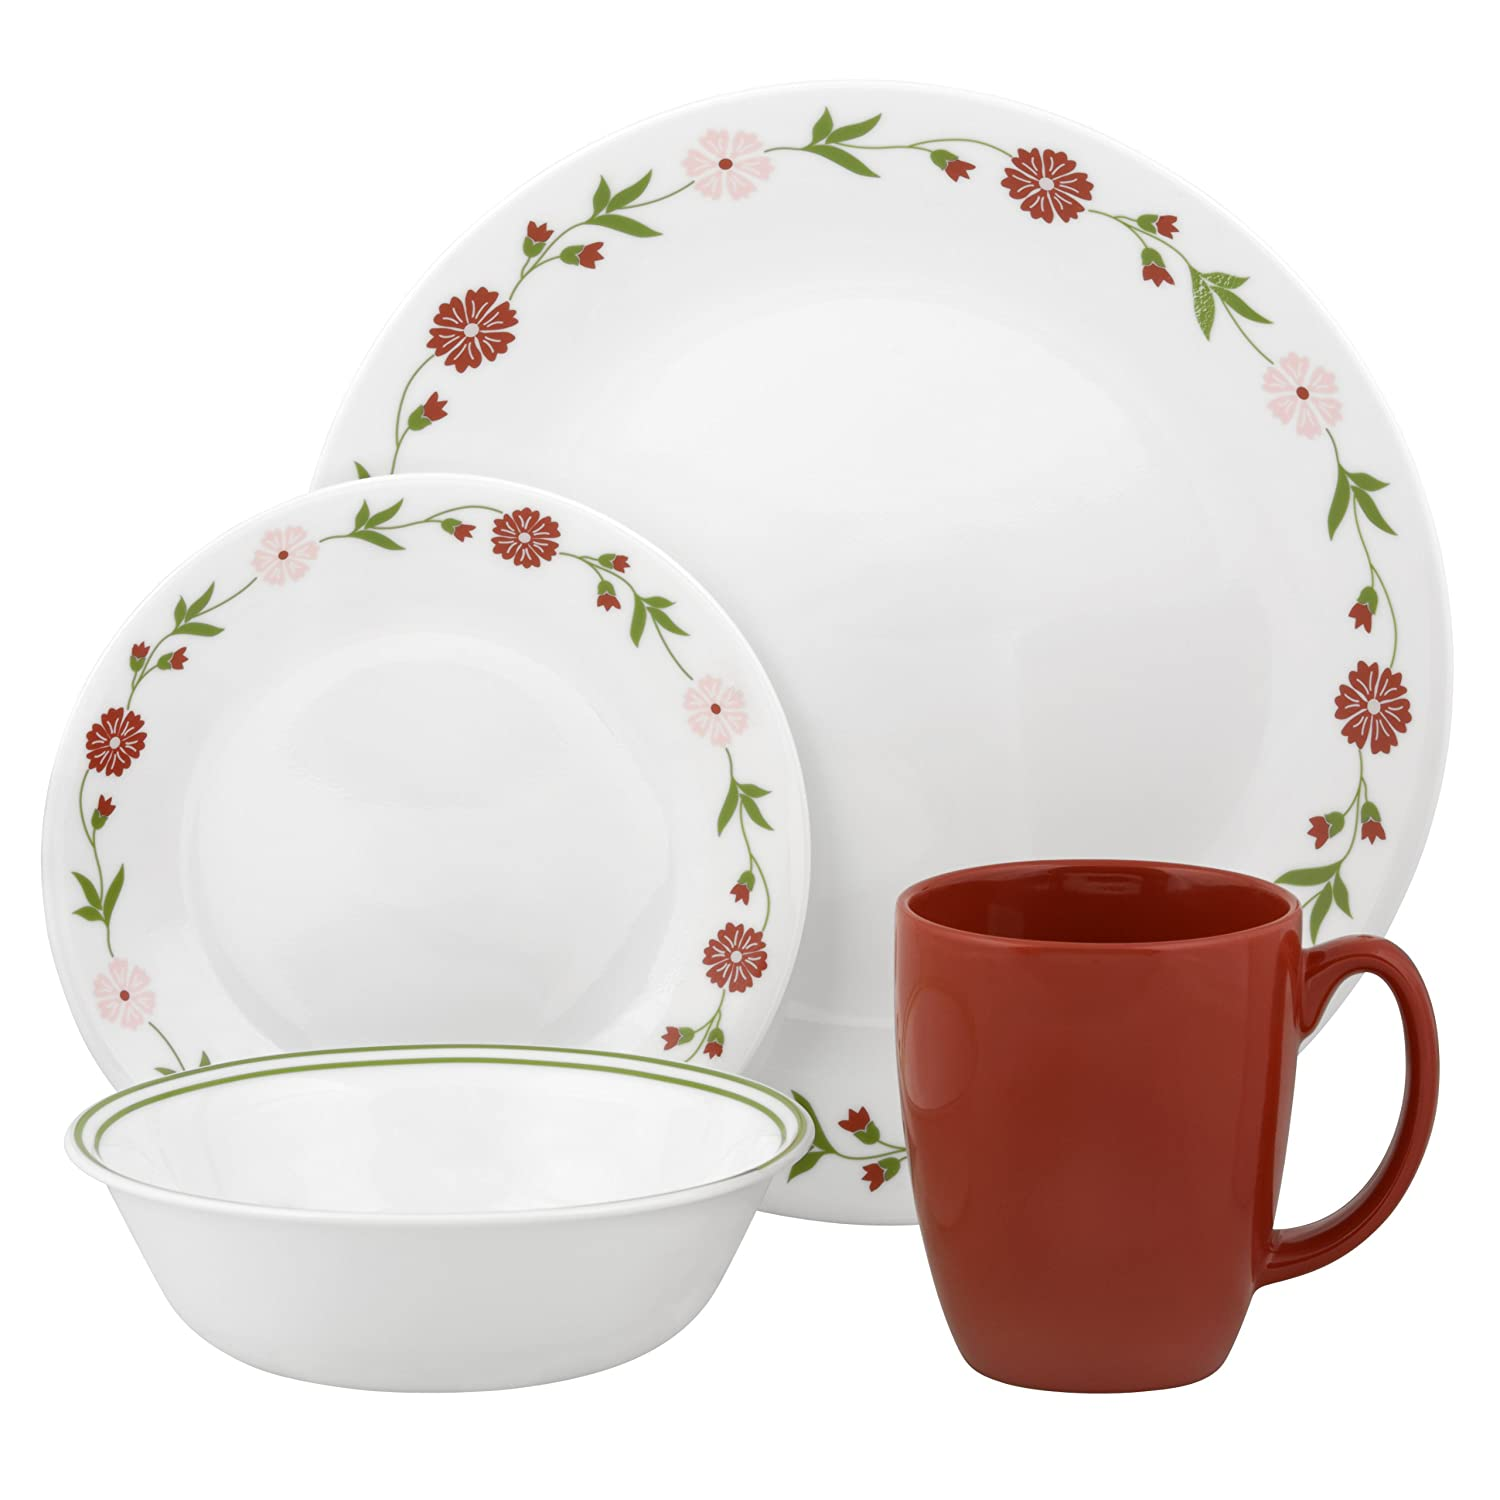 Corelle Dishes Corelle Dinnerware Sets Something For Everyone Gift Ideas